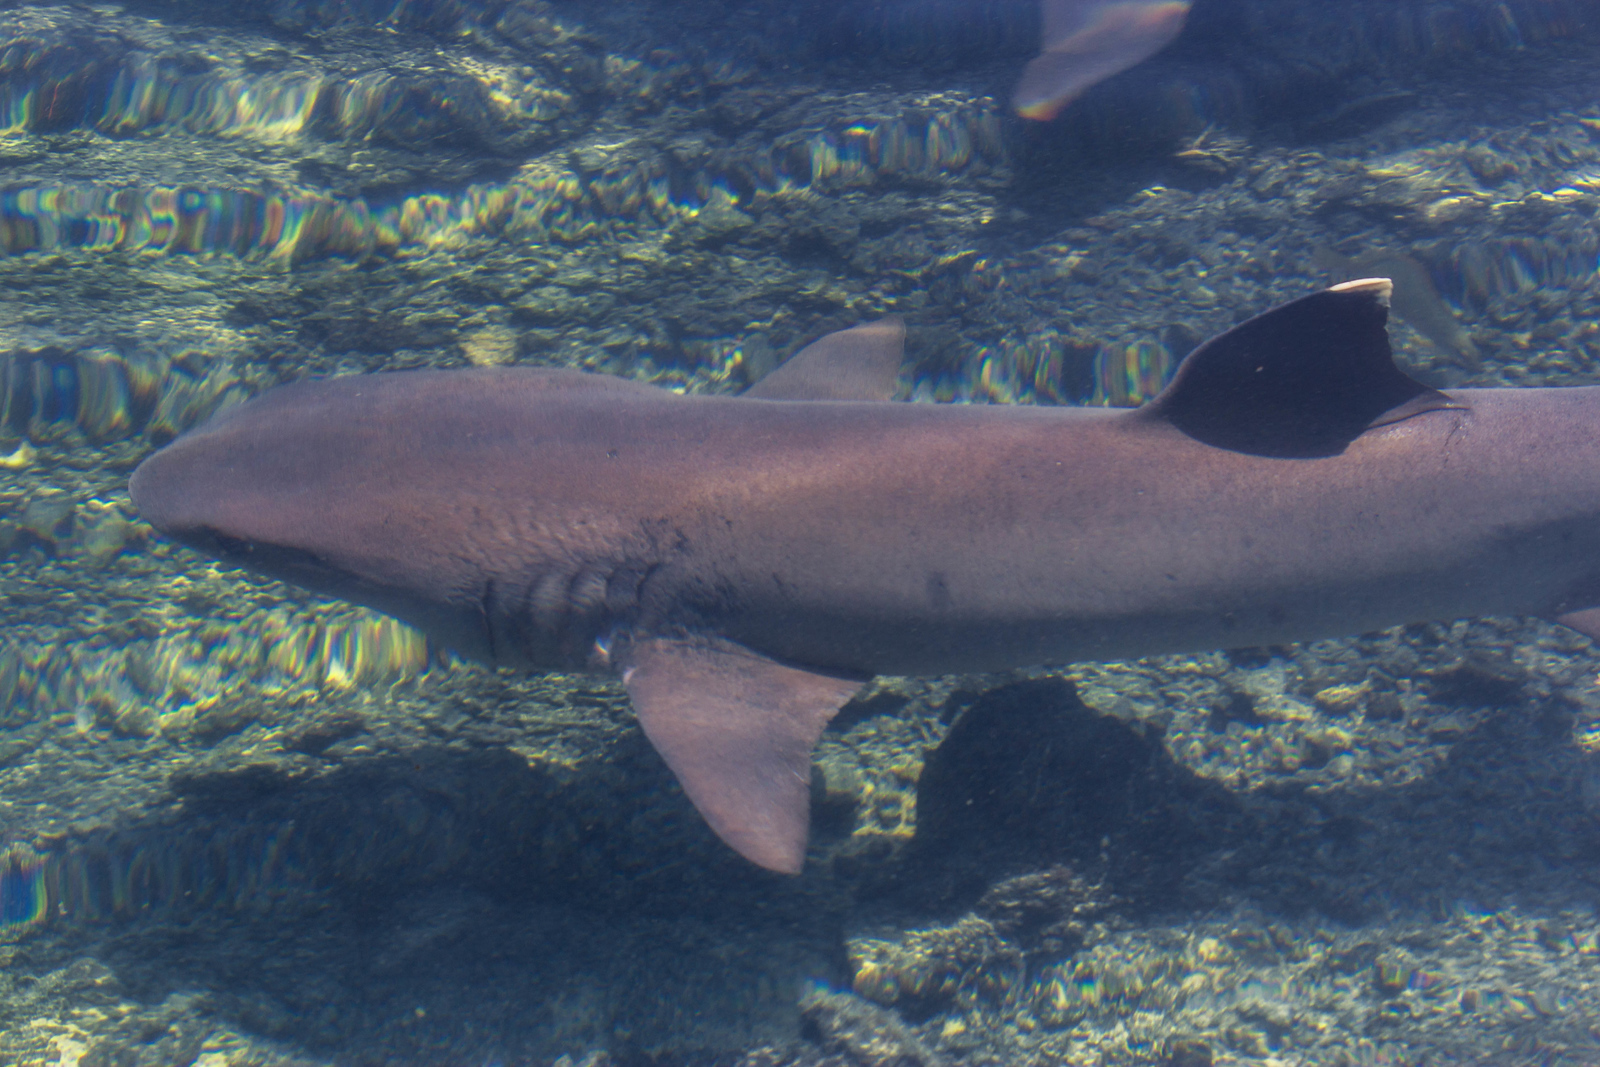 The White tipped reef shark in the Galapagos.